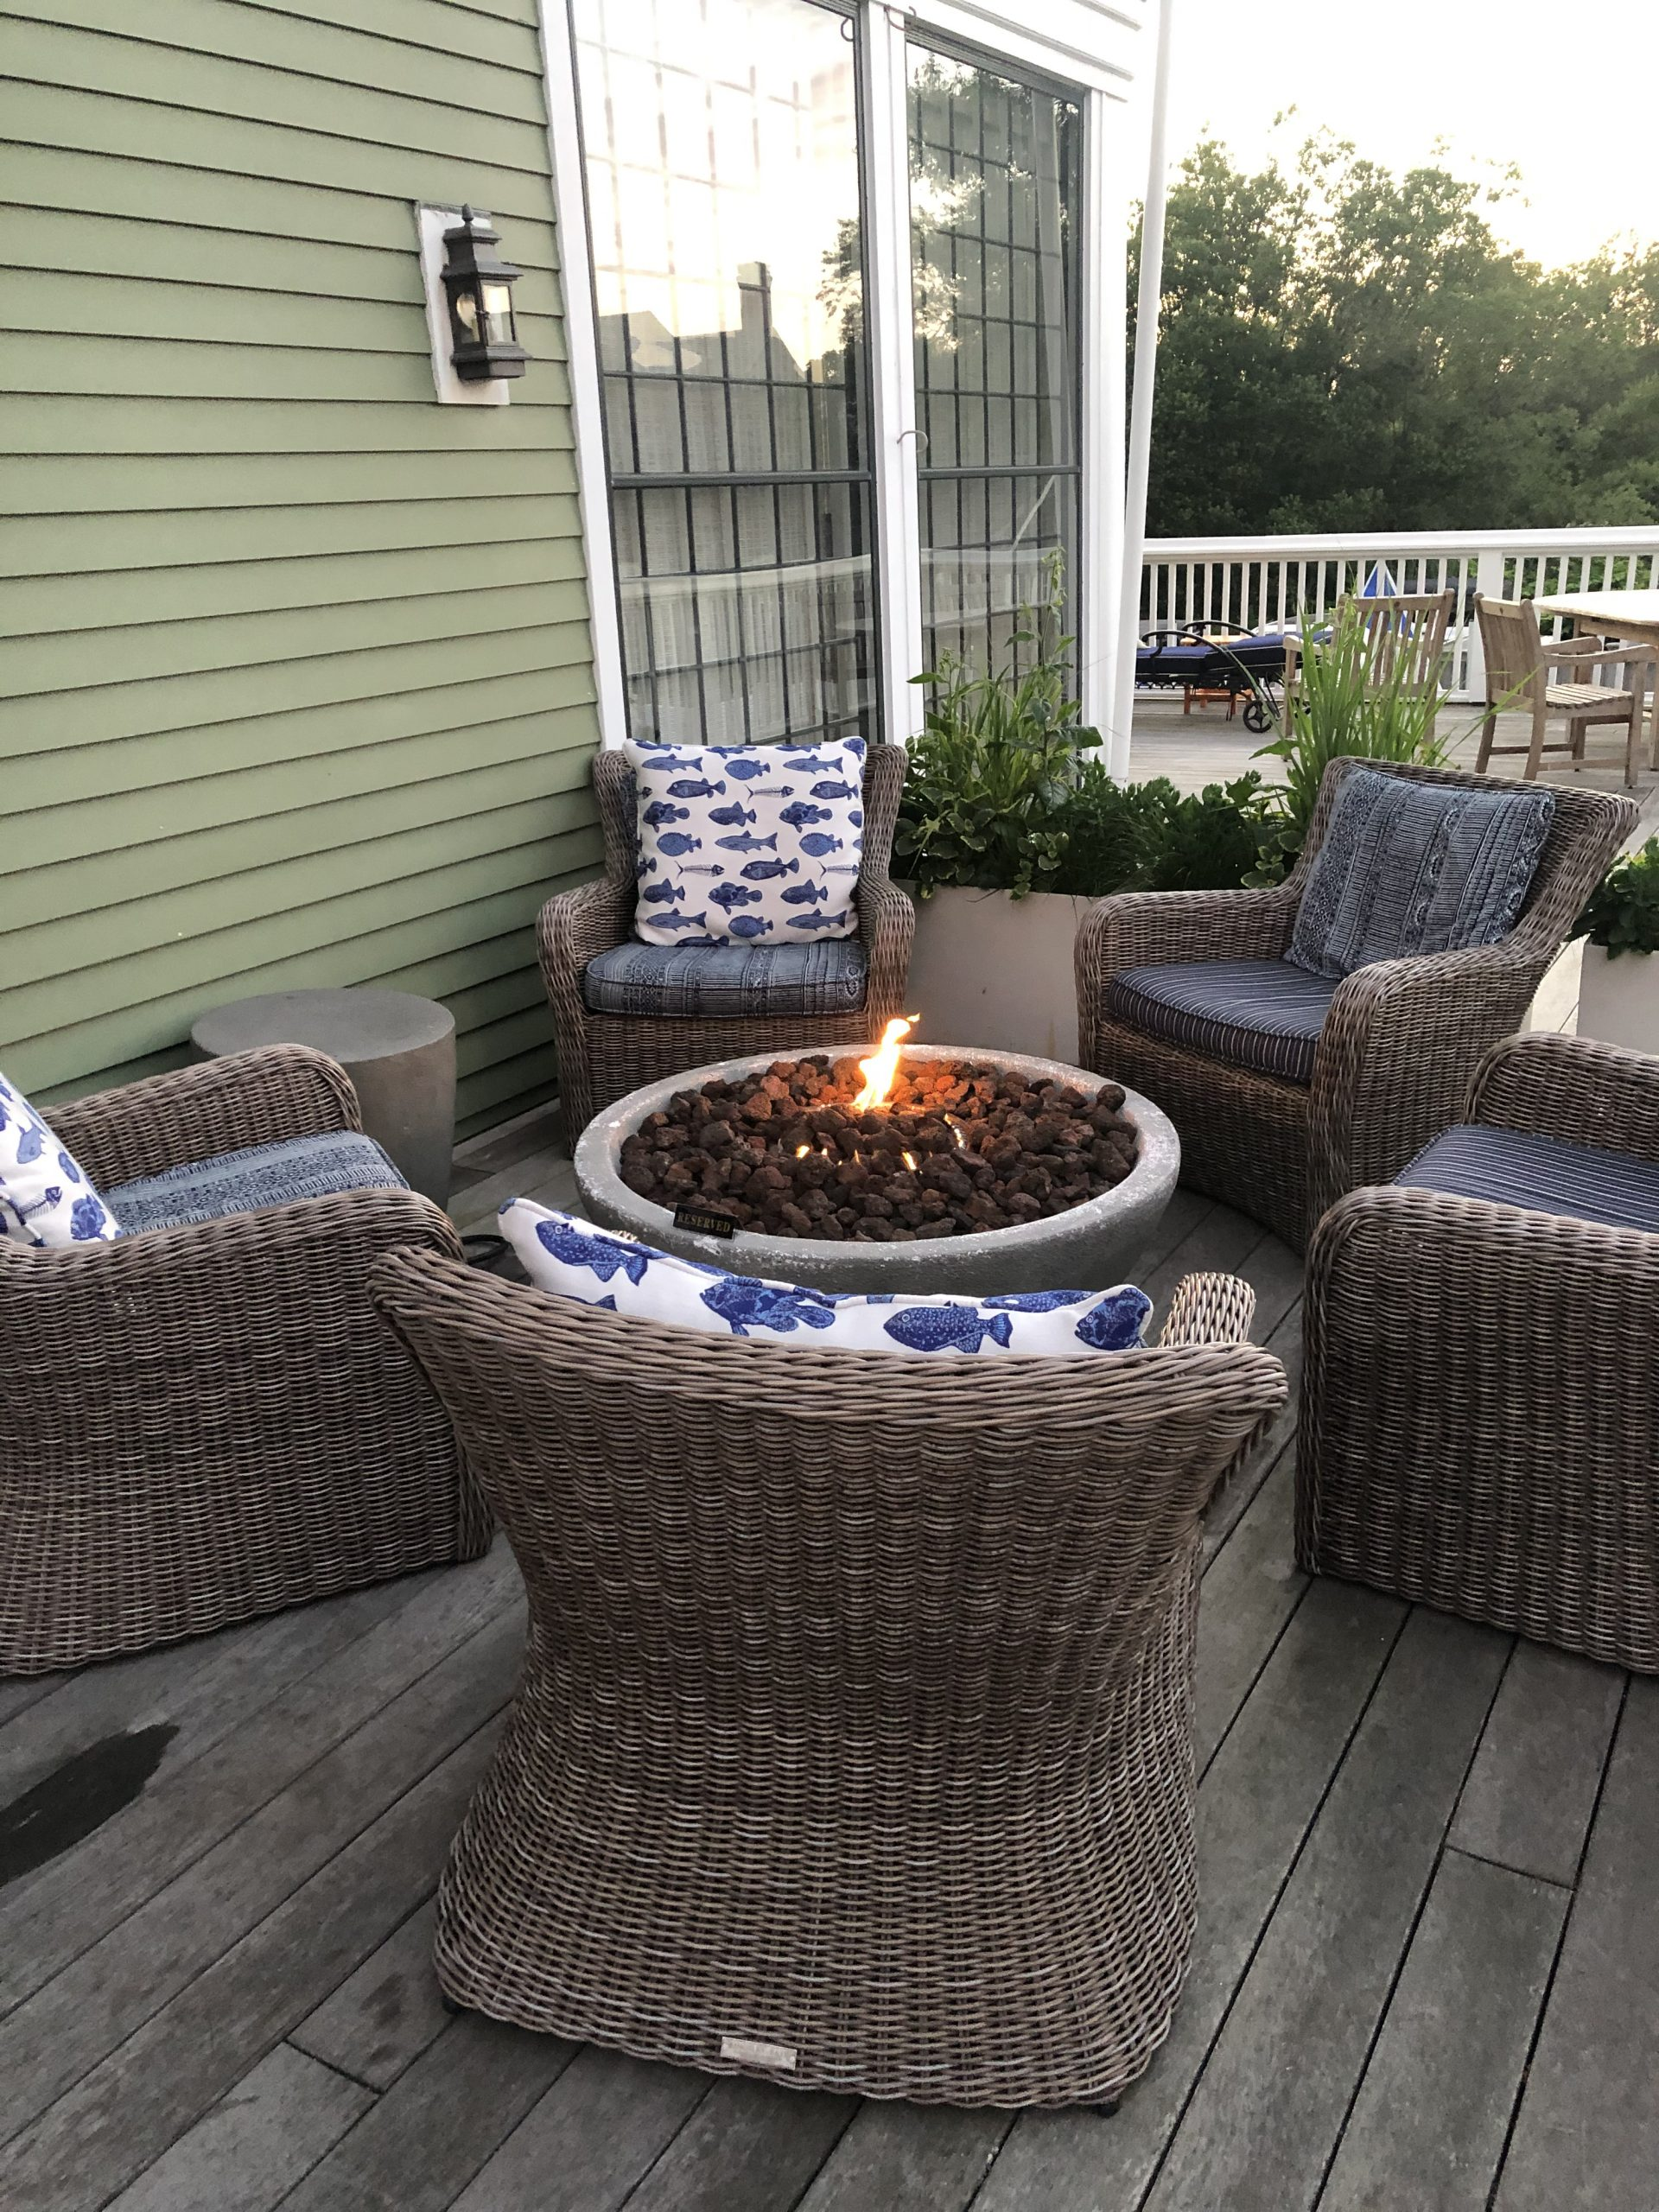 The Nantucket Hotel and Resort - Amenities and Experiences for Guests - Private Smores Making on the Deck